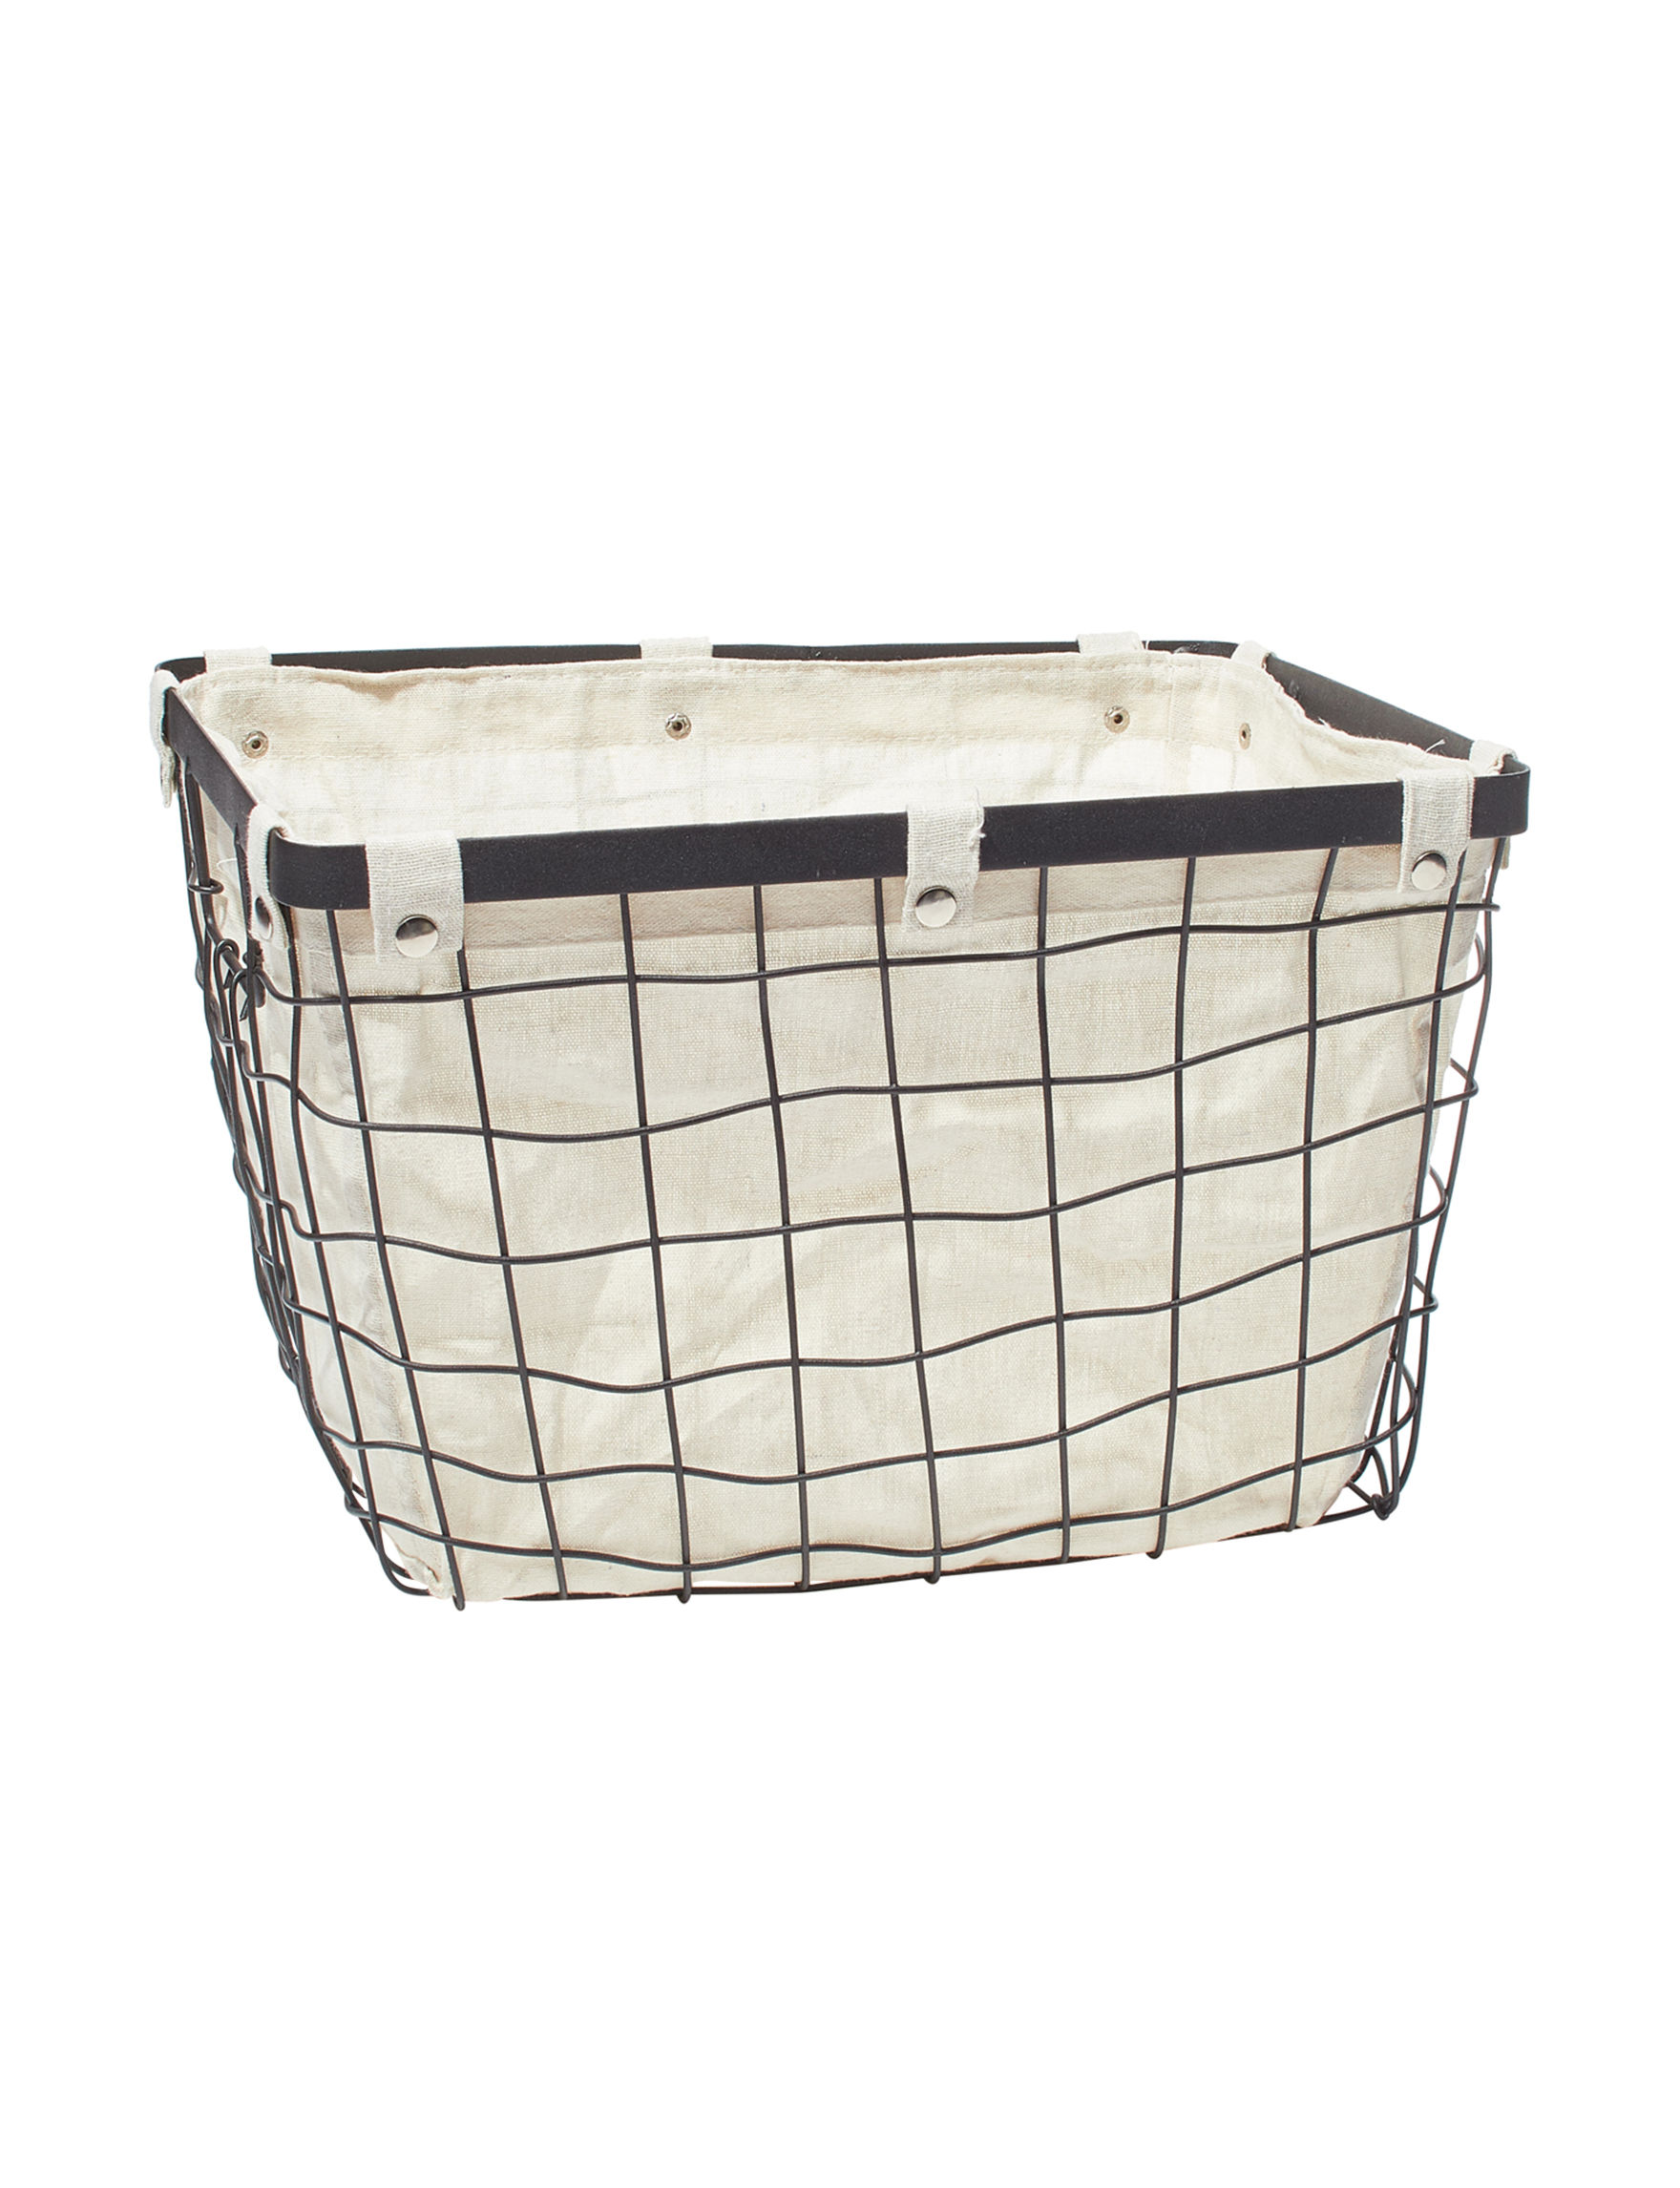 Enchante Black Baskets Storage & Organization